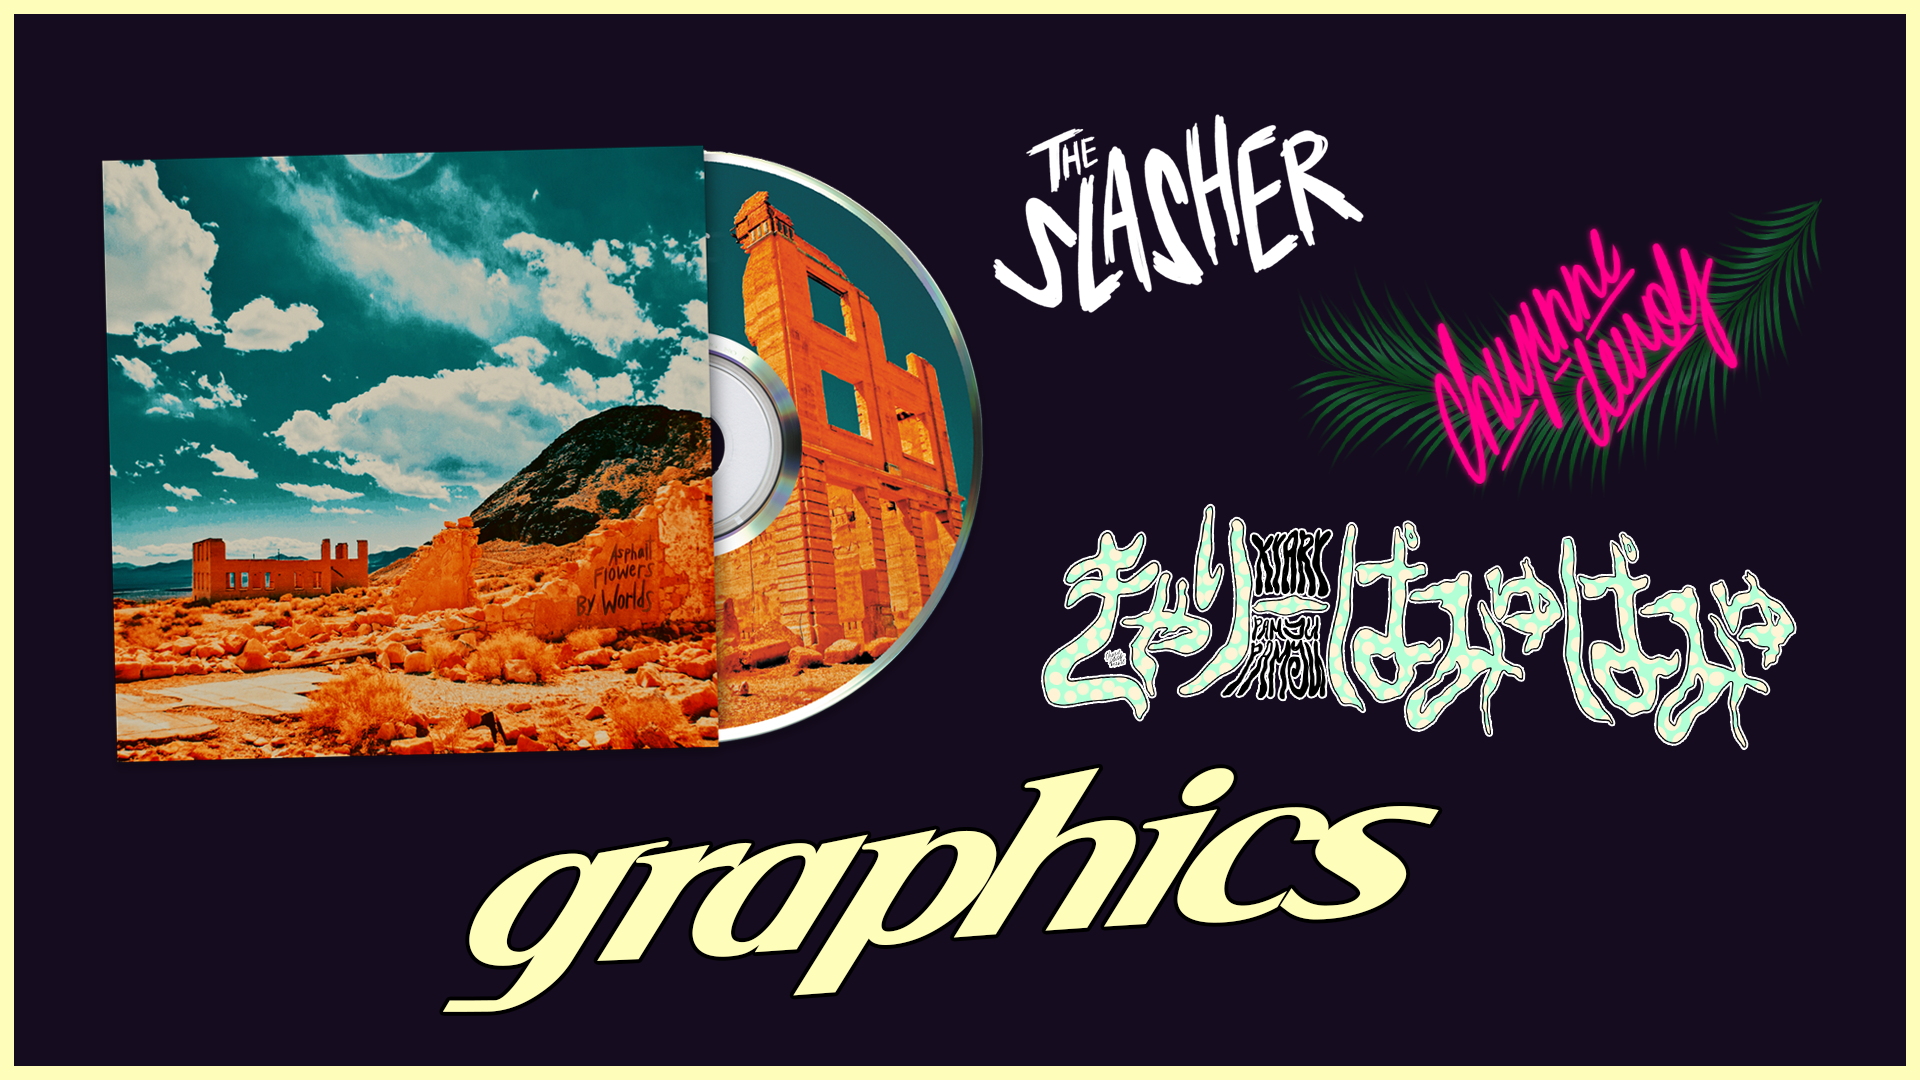 comm-flashy-tabs-graphics-v2.png